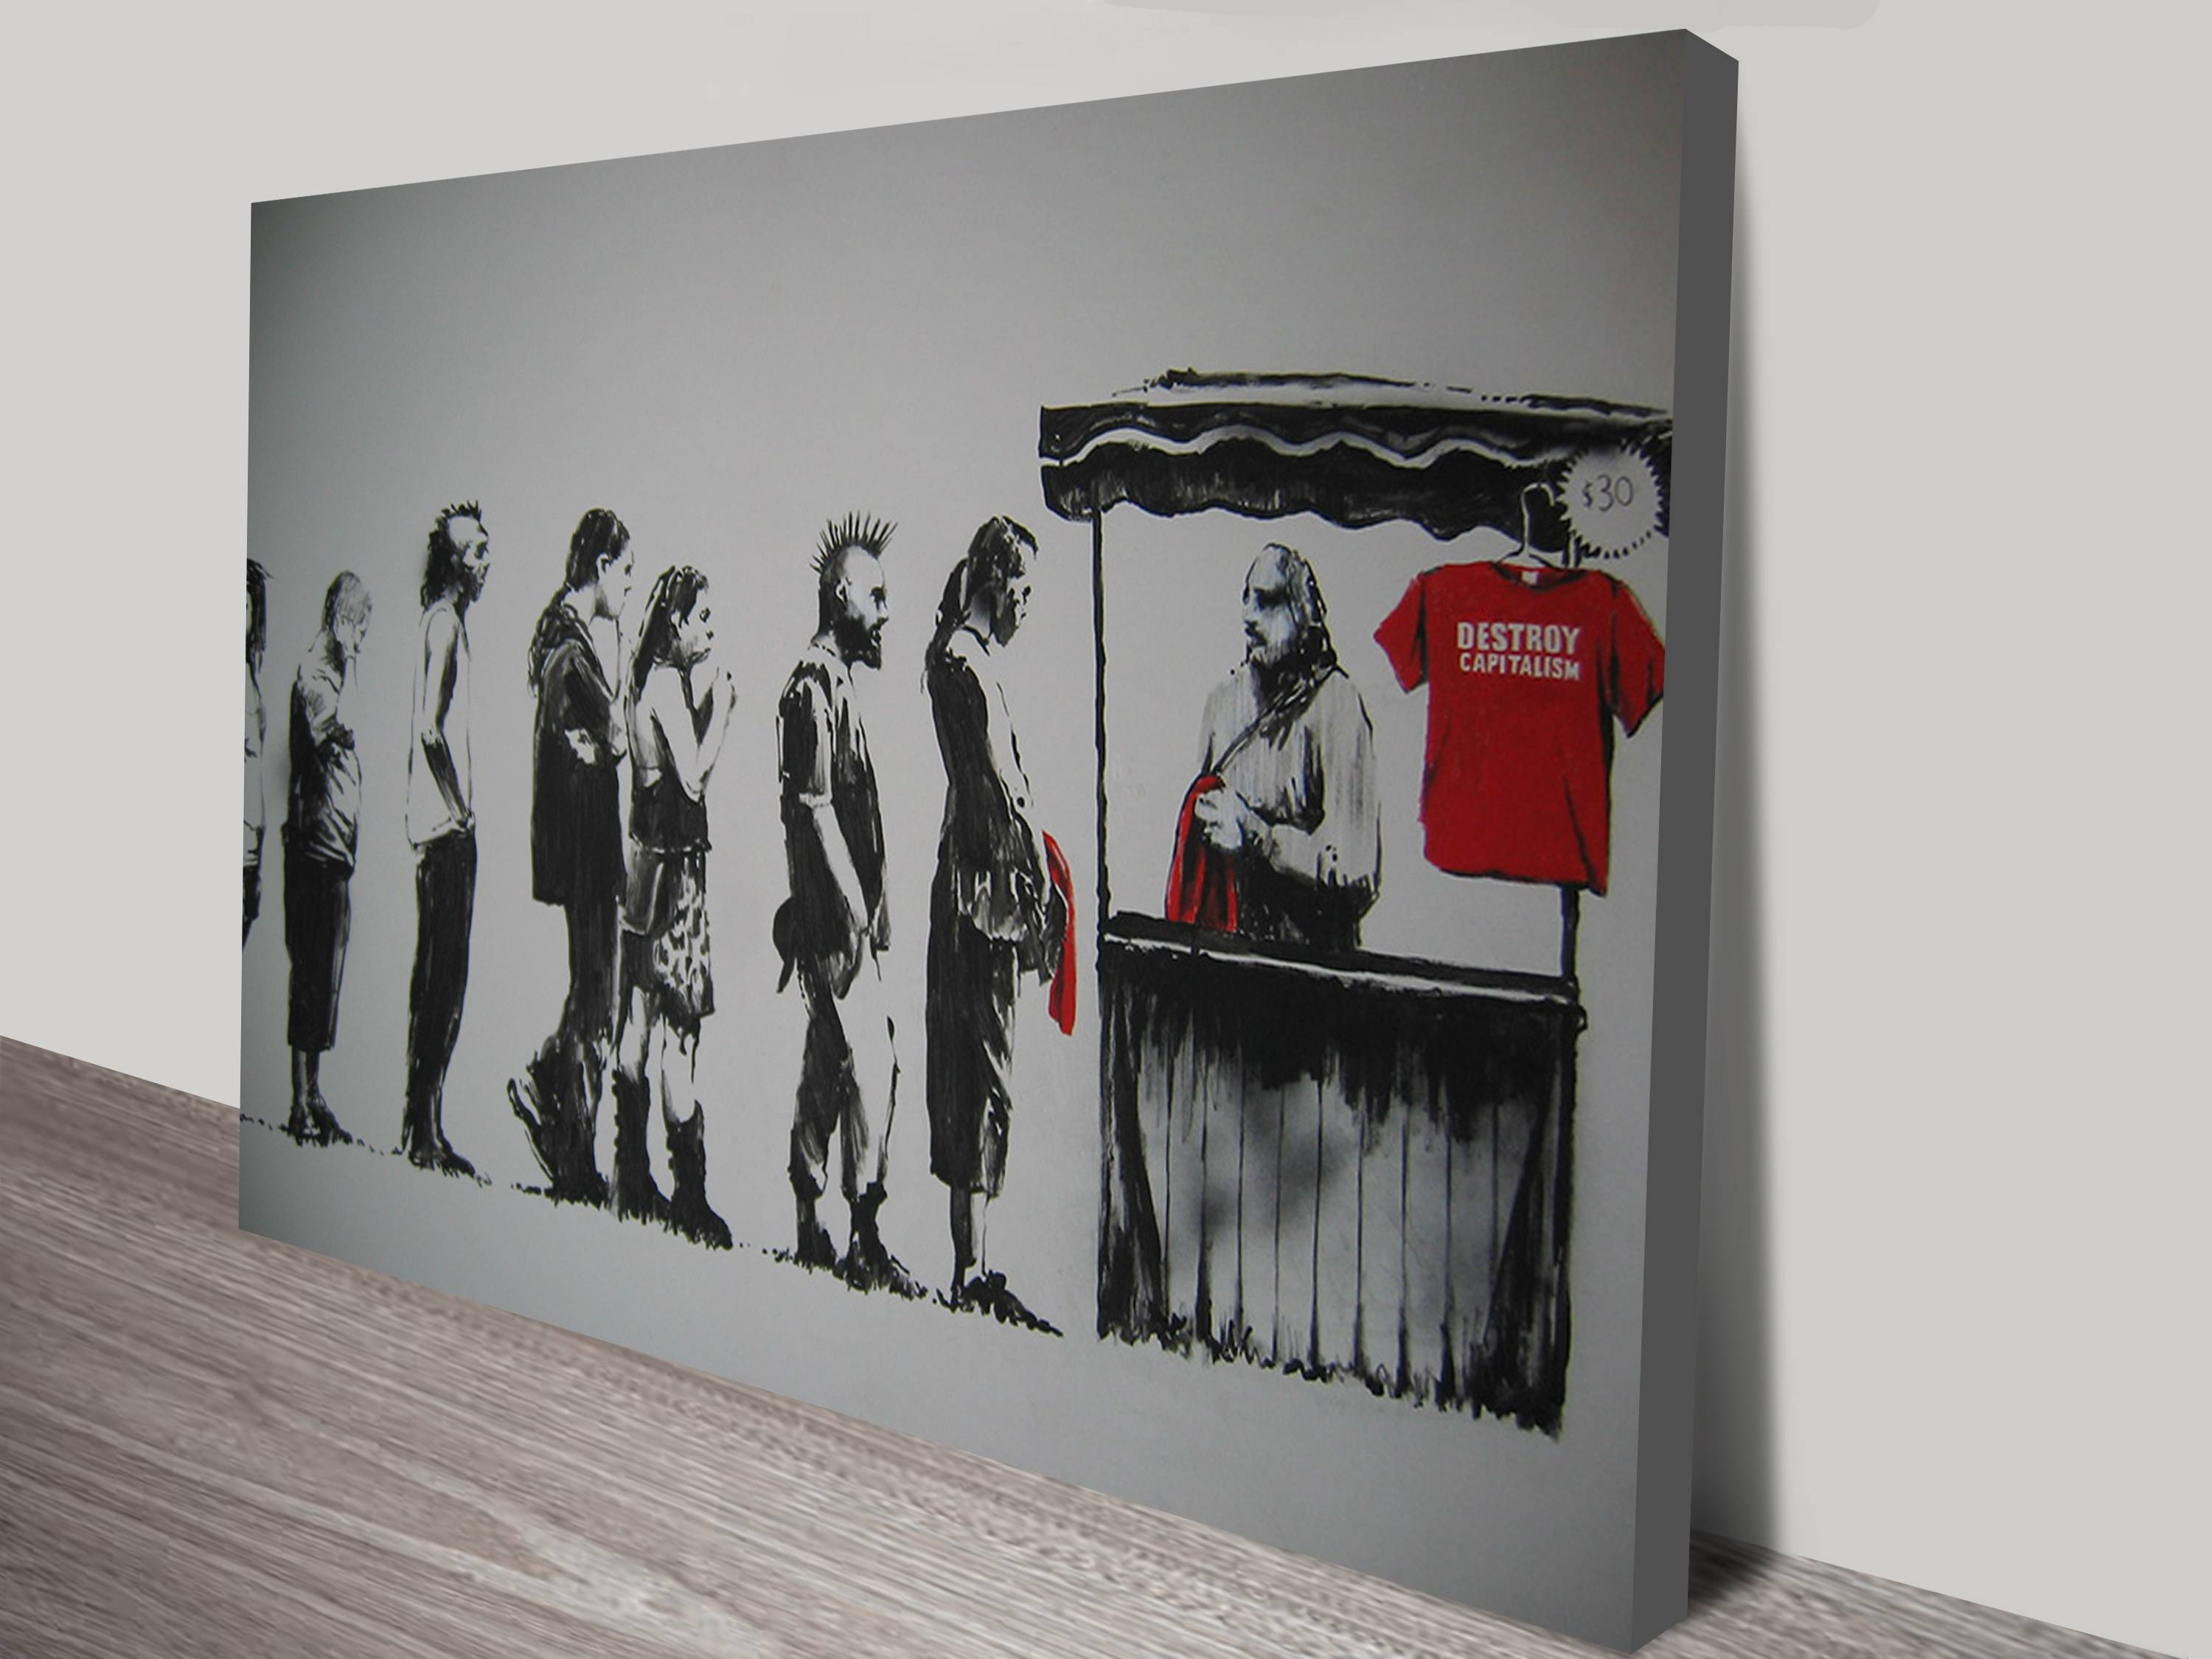 Destroy Capitalism Canvas Wall Art Australia For 2018 Banksy Wall Art Canvas (View 3 of 20)